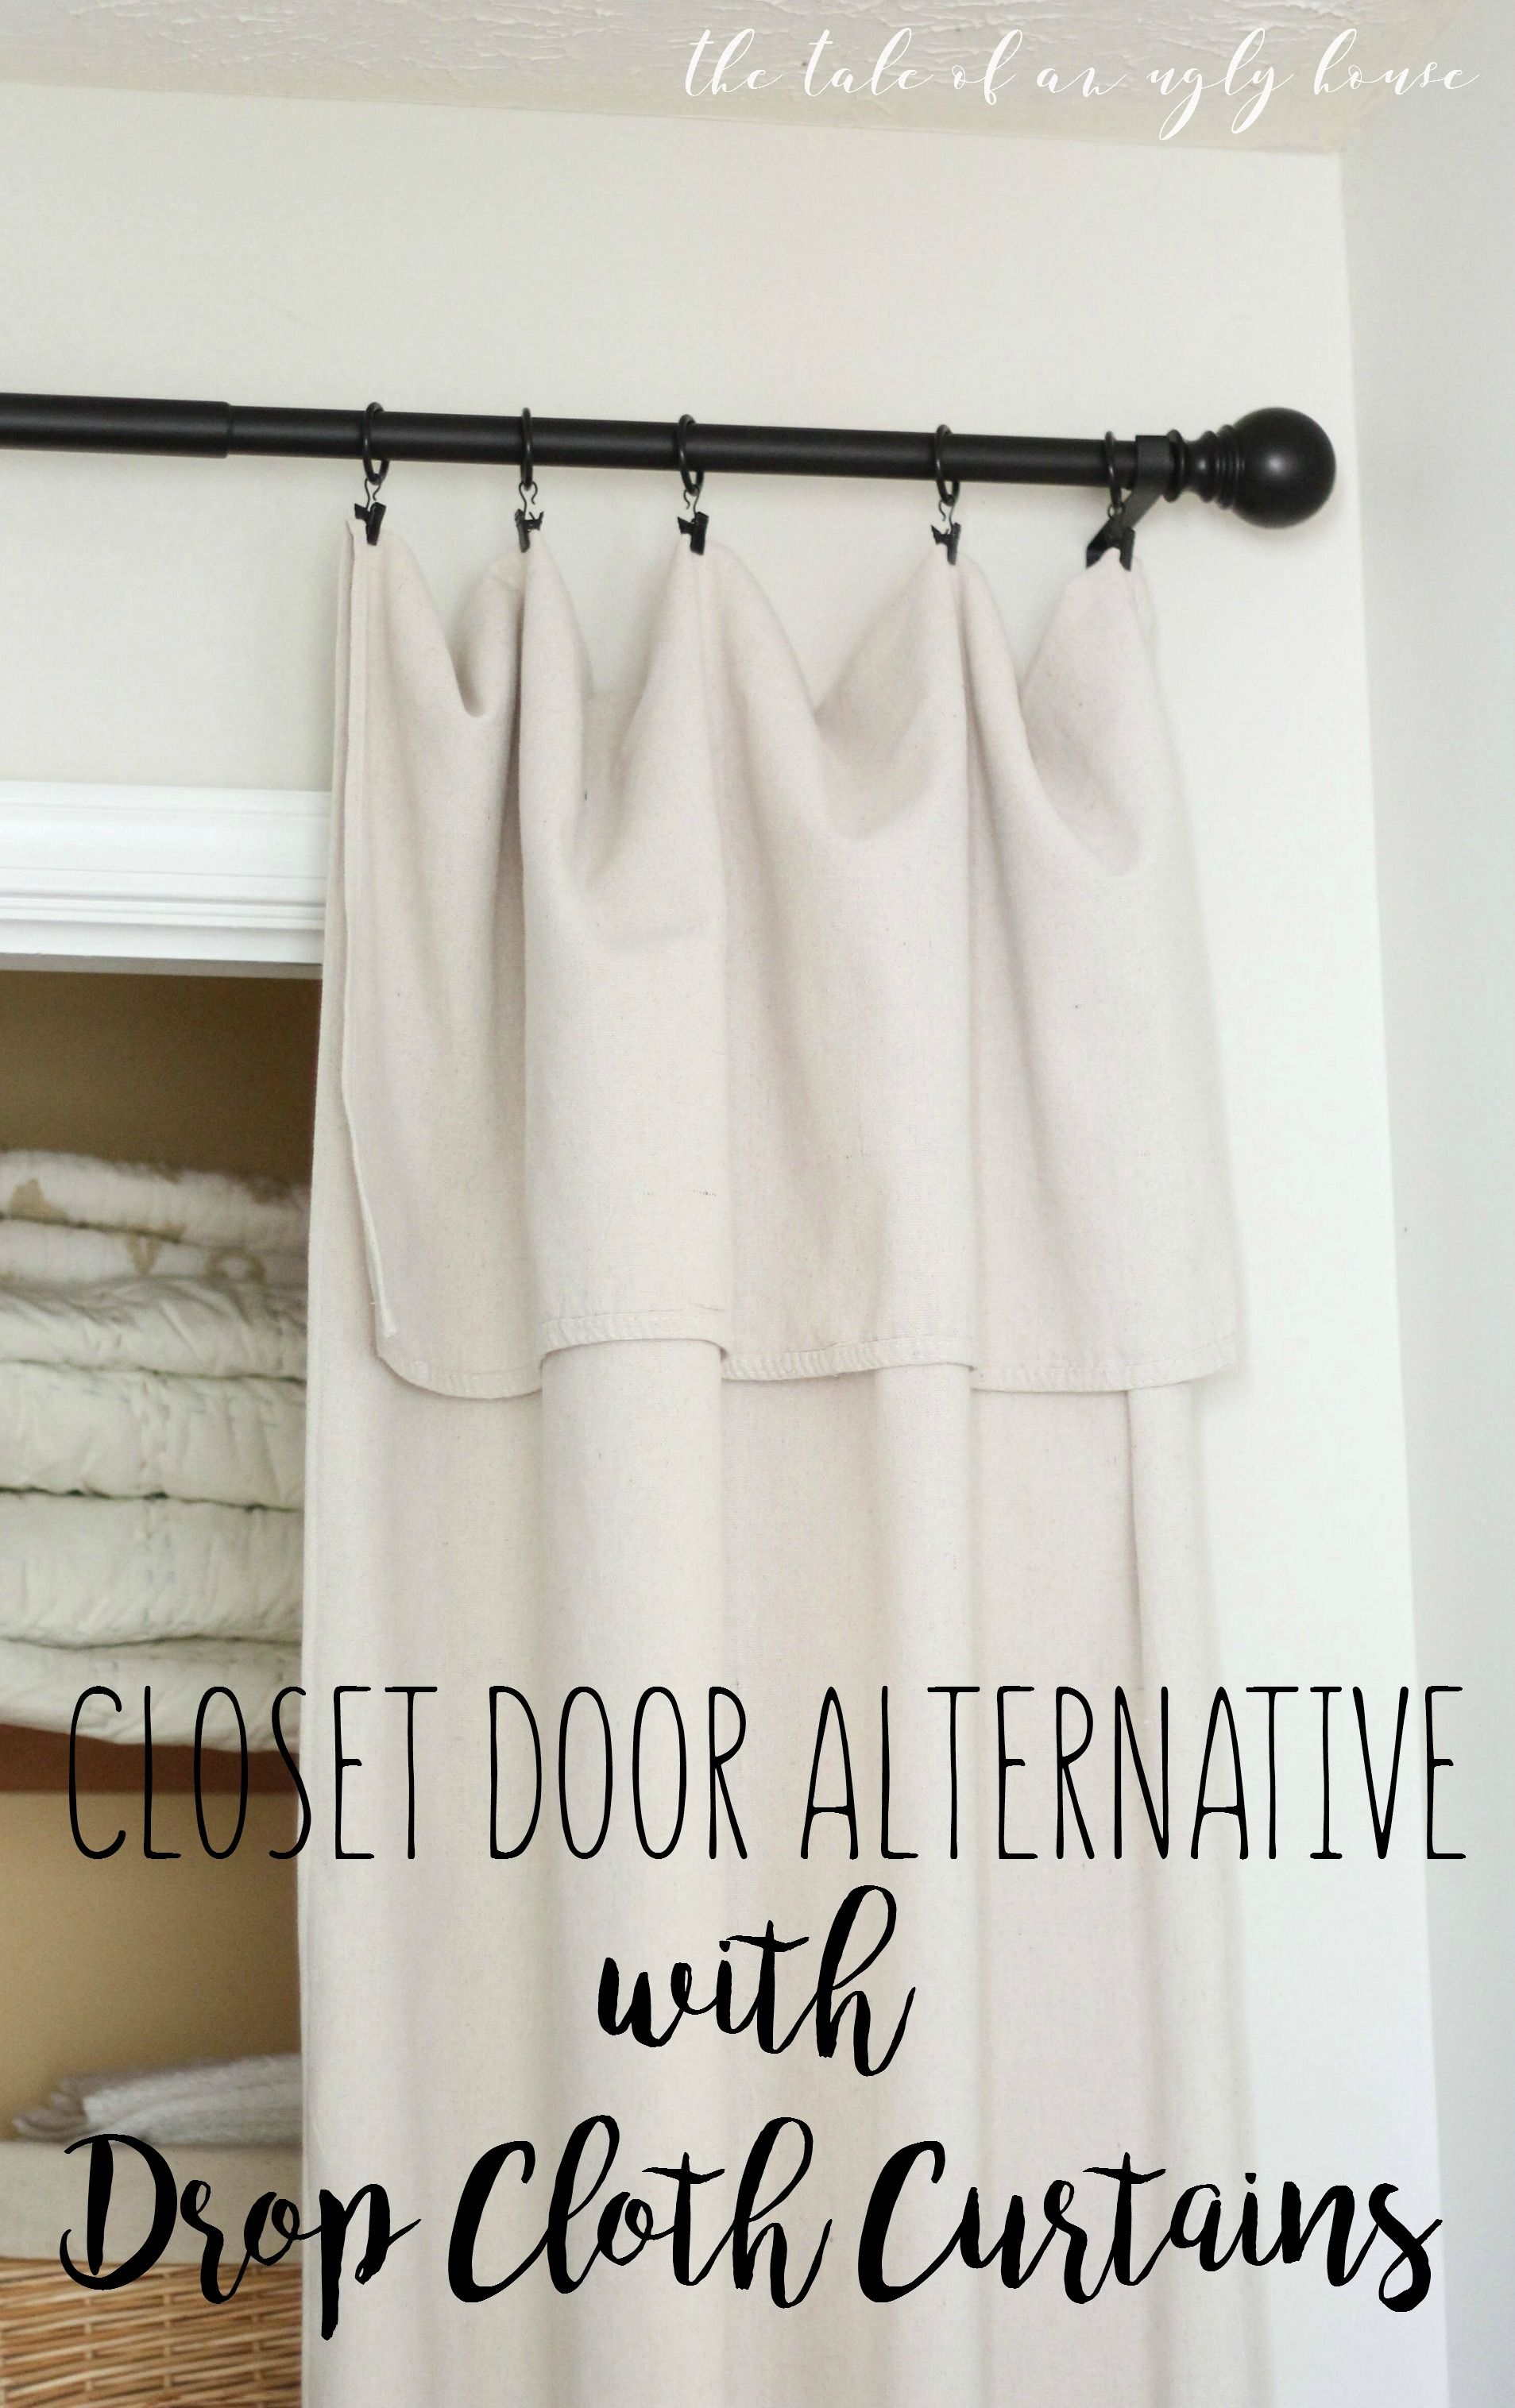 Shower curtain alternatives - Diy Closet Door Alternative With Drop Cloth Curtains Easy And Super Affordable